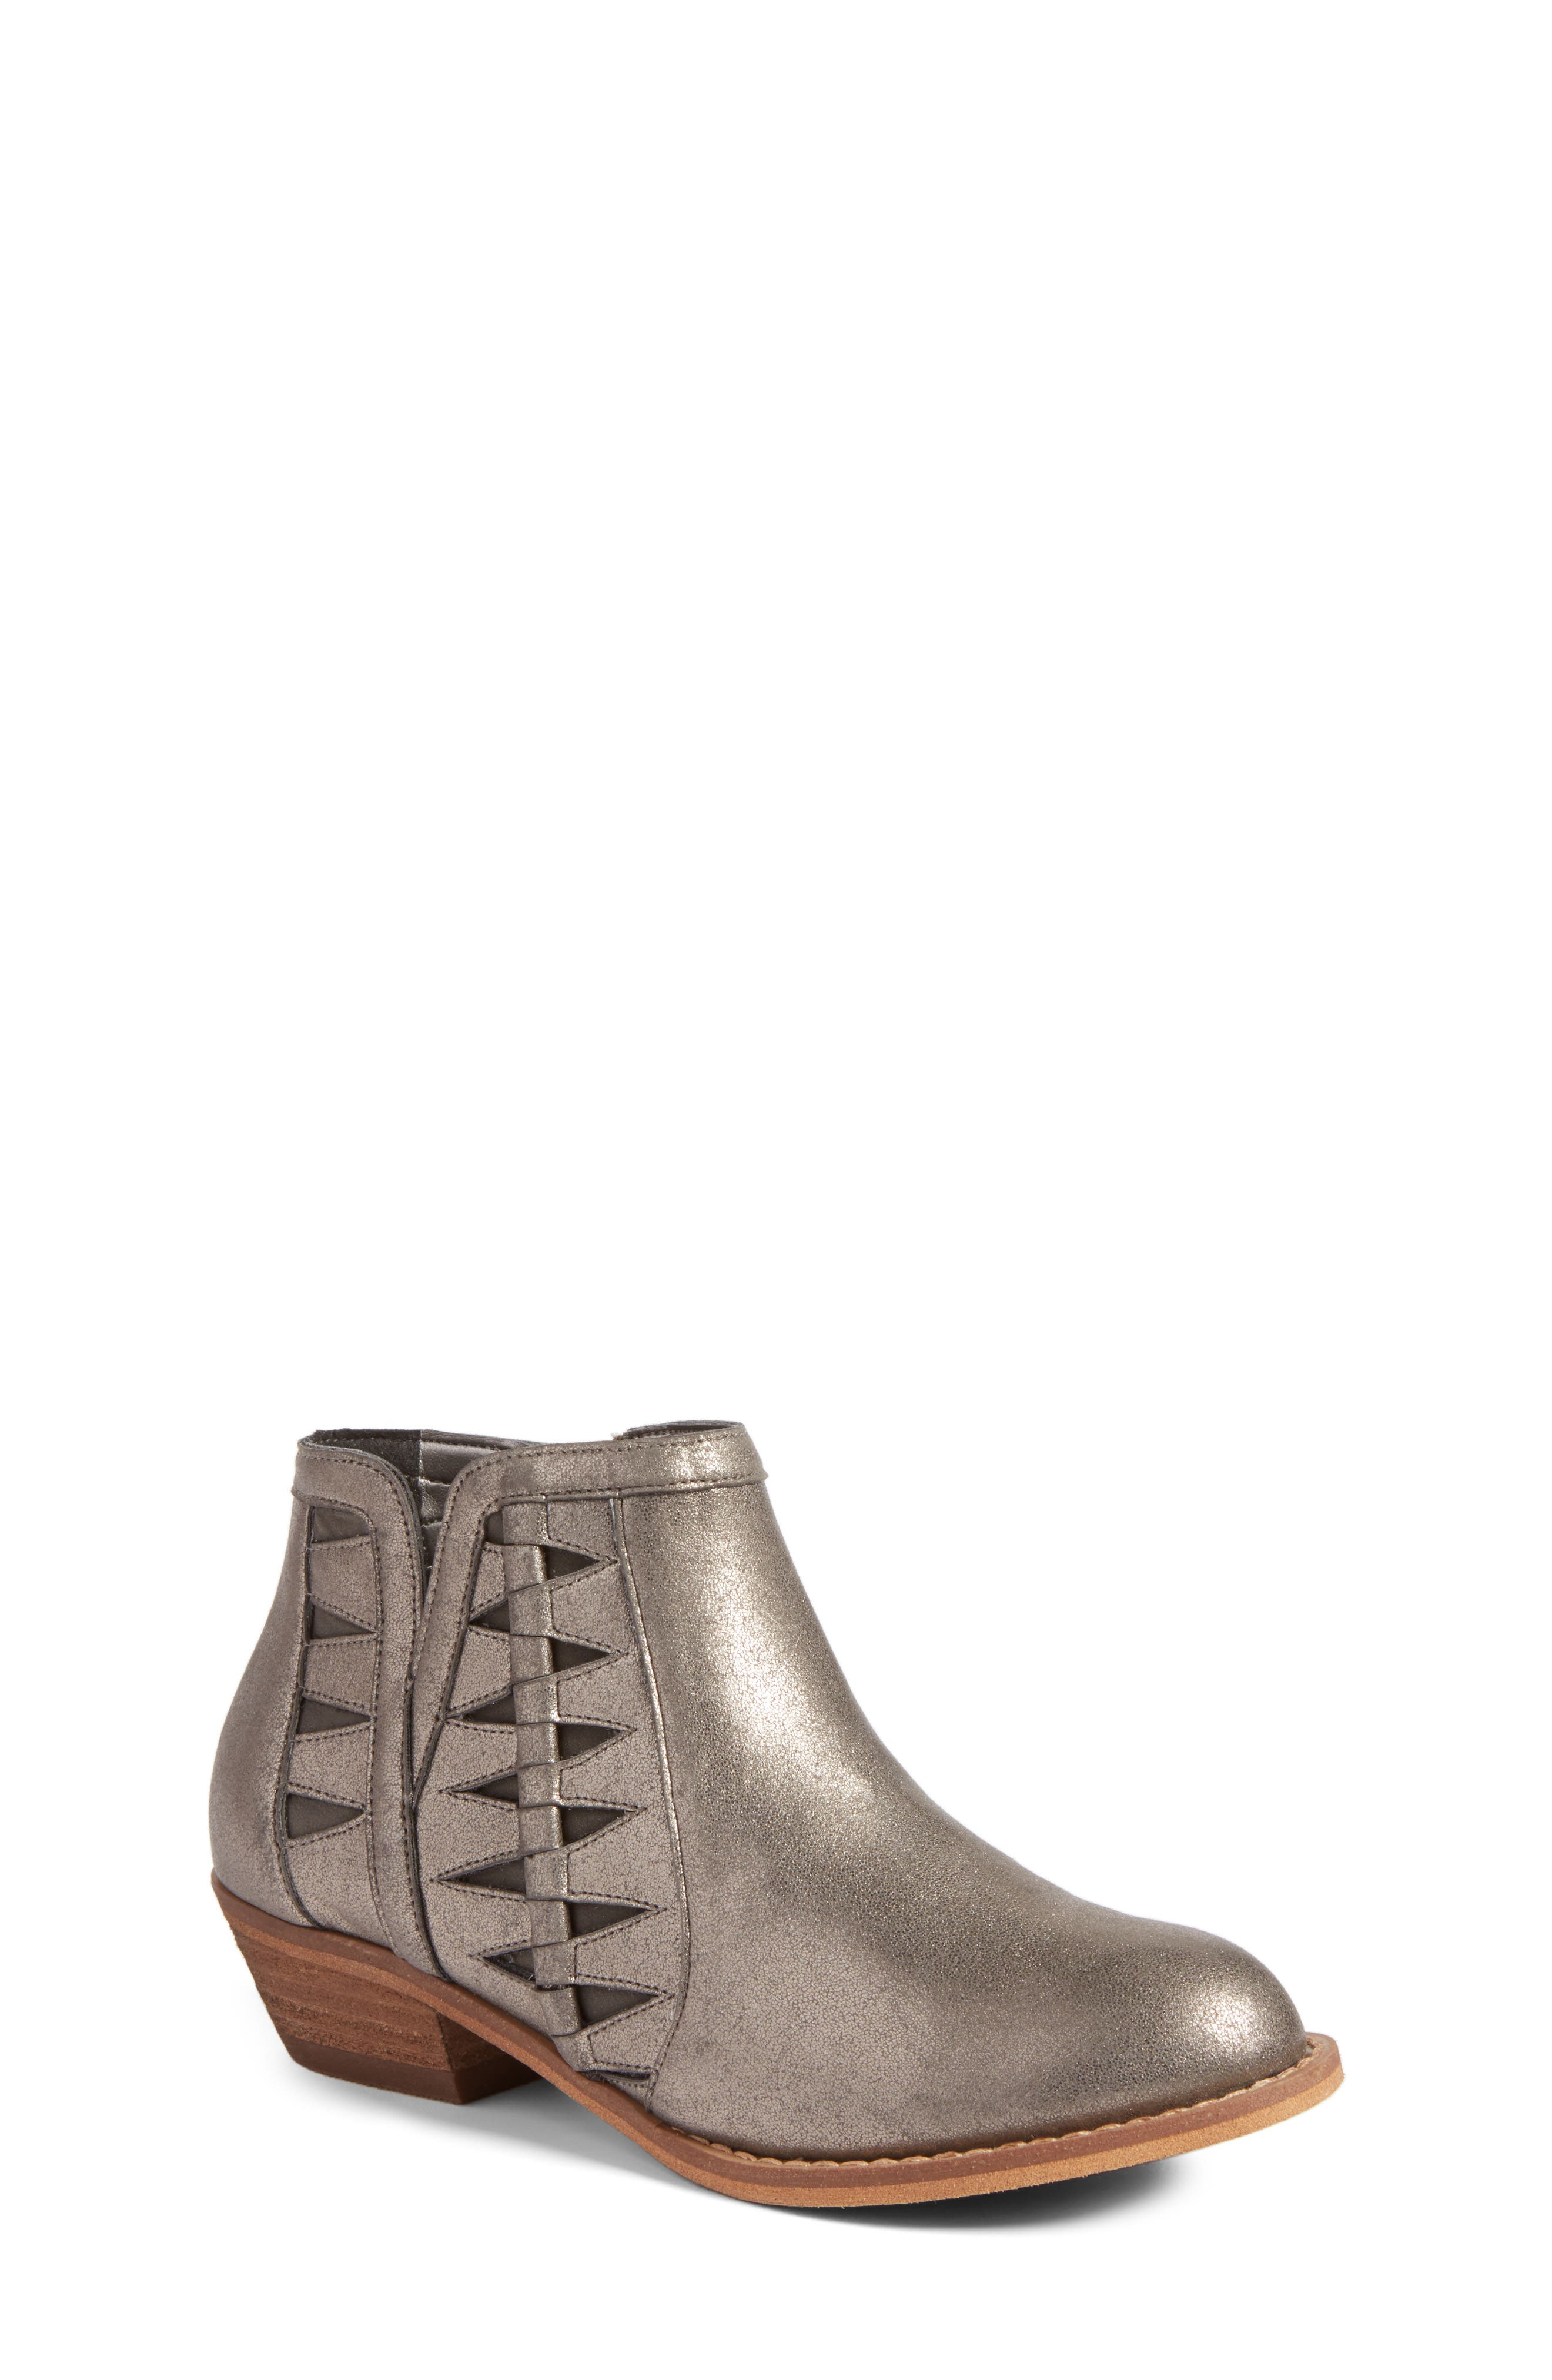 Tinsley Boot,                         Main,                         color, 020